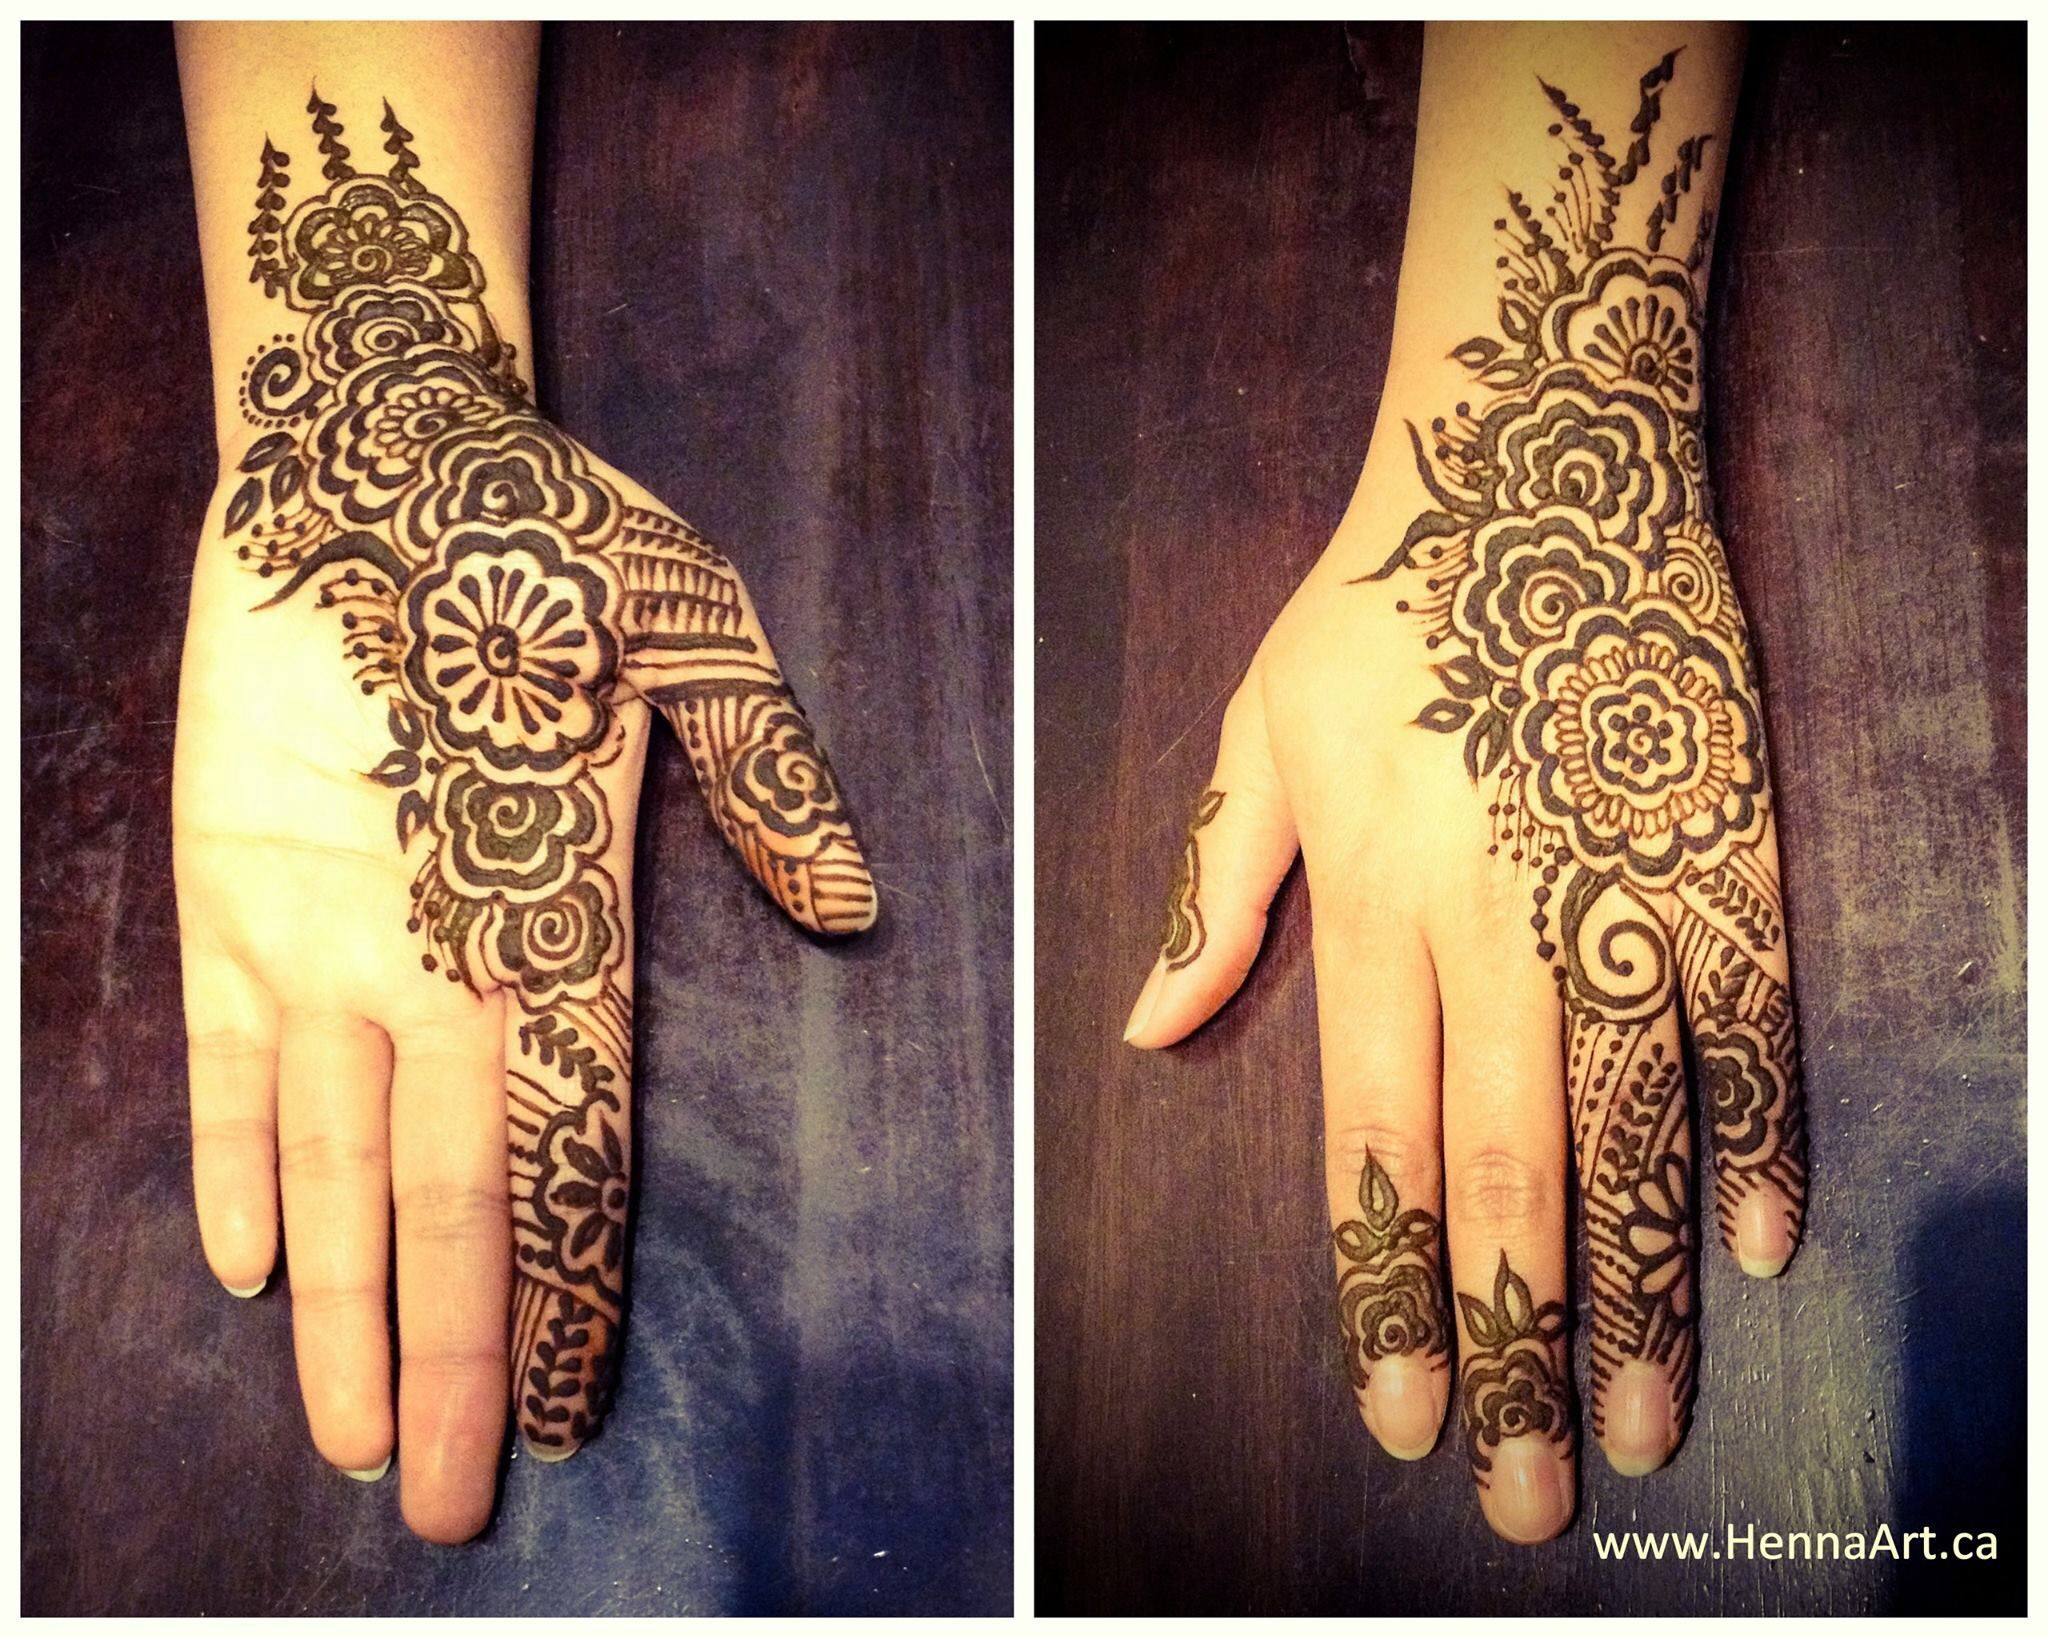 Gulf inspired henna design this design is also known as khalijee or